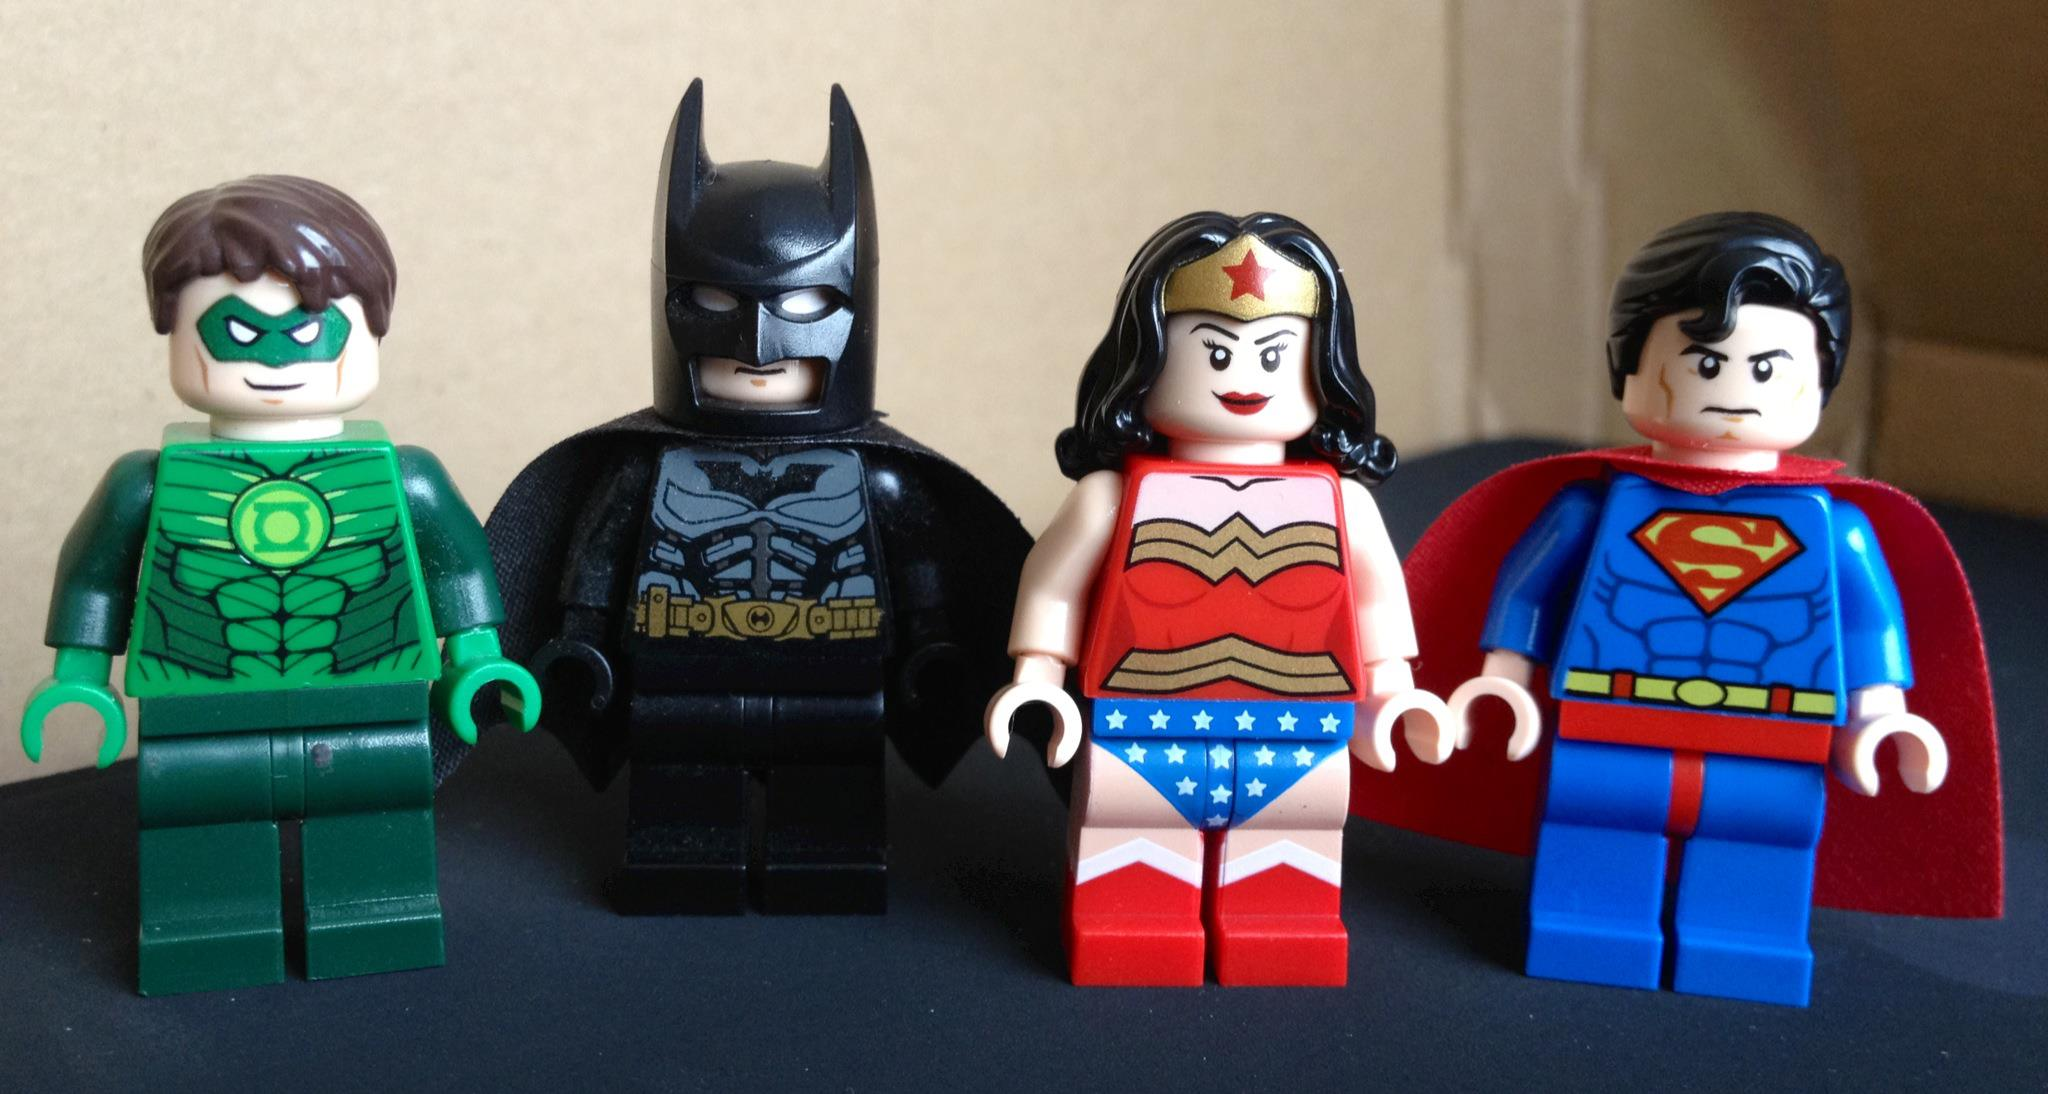 Pictures From The Lego Movie: The Dark Heart Of The Lego Movie